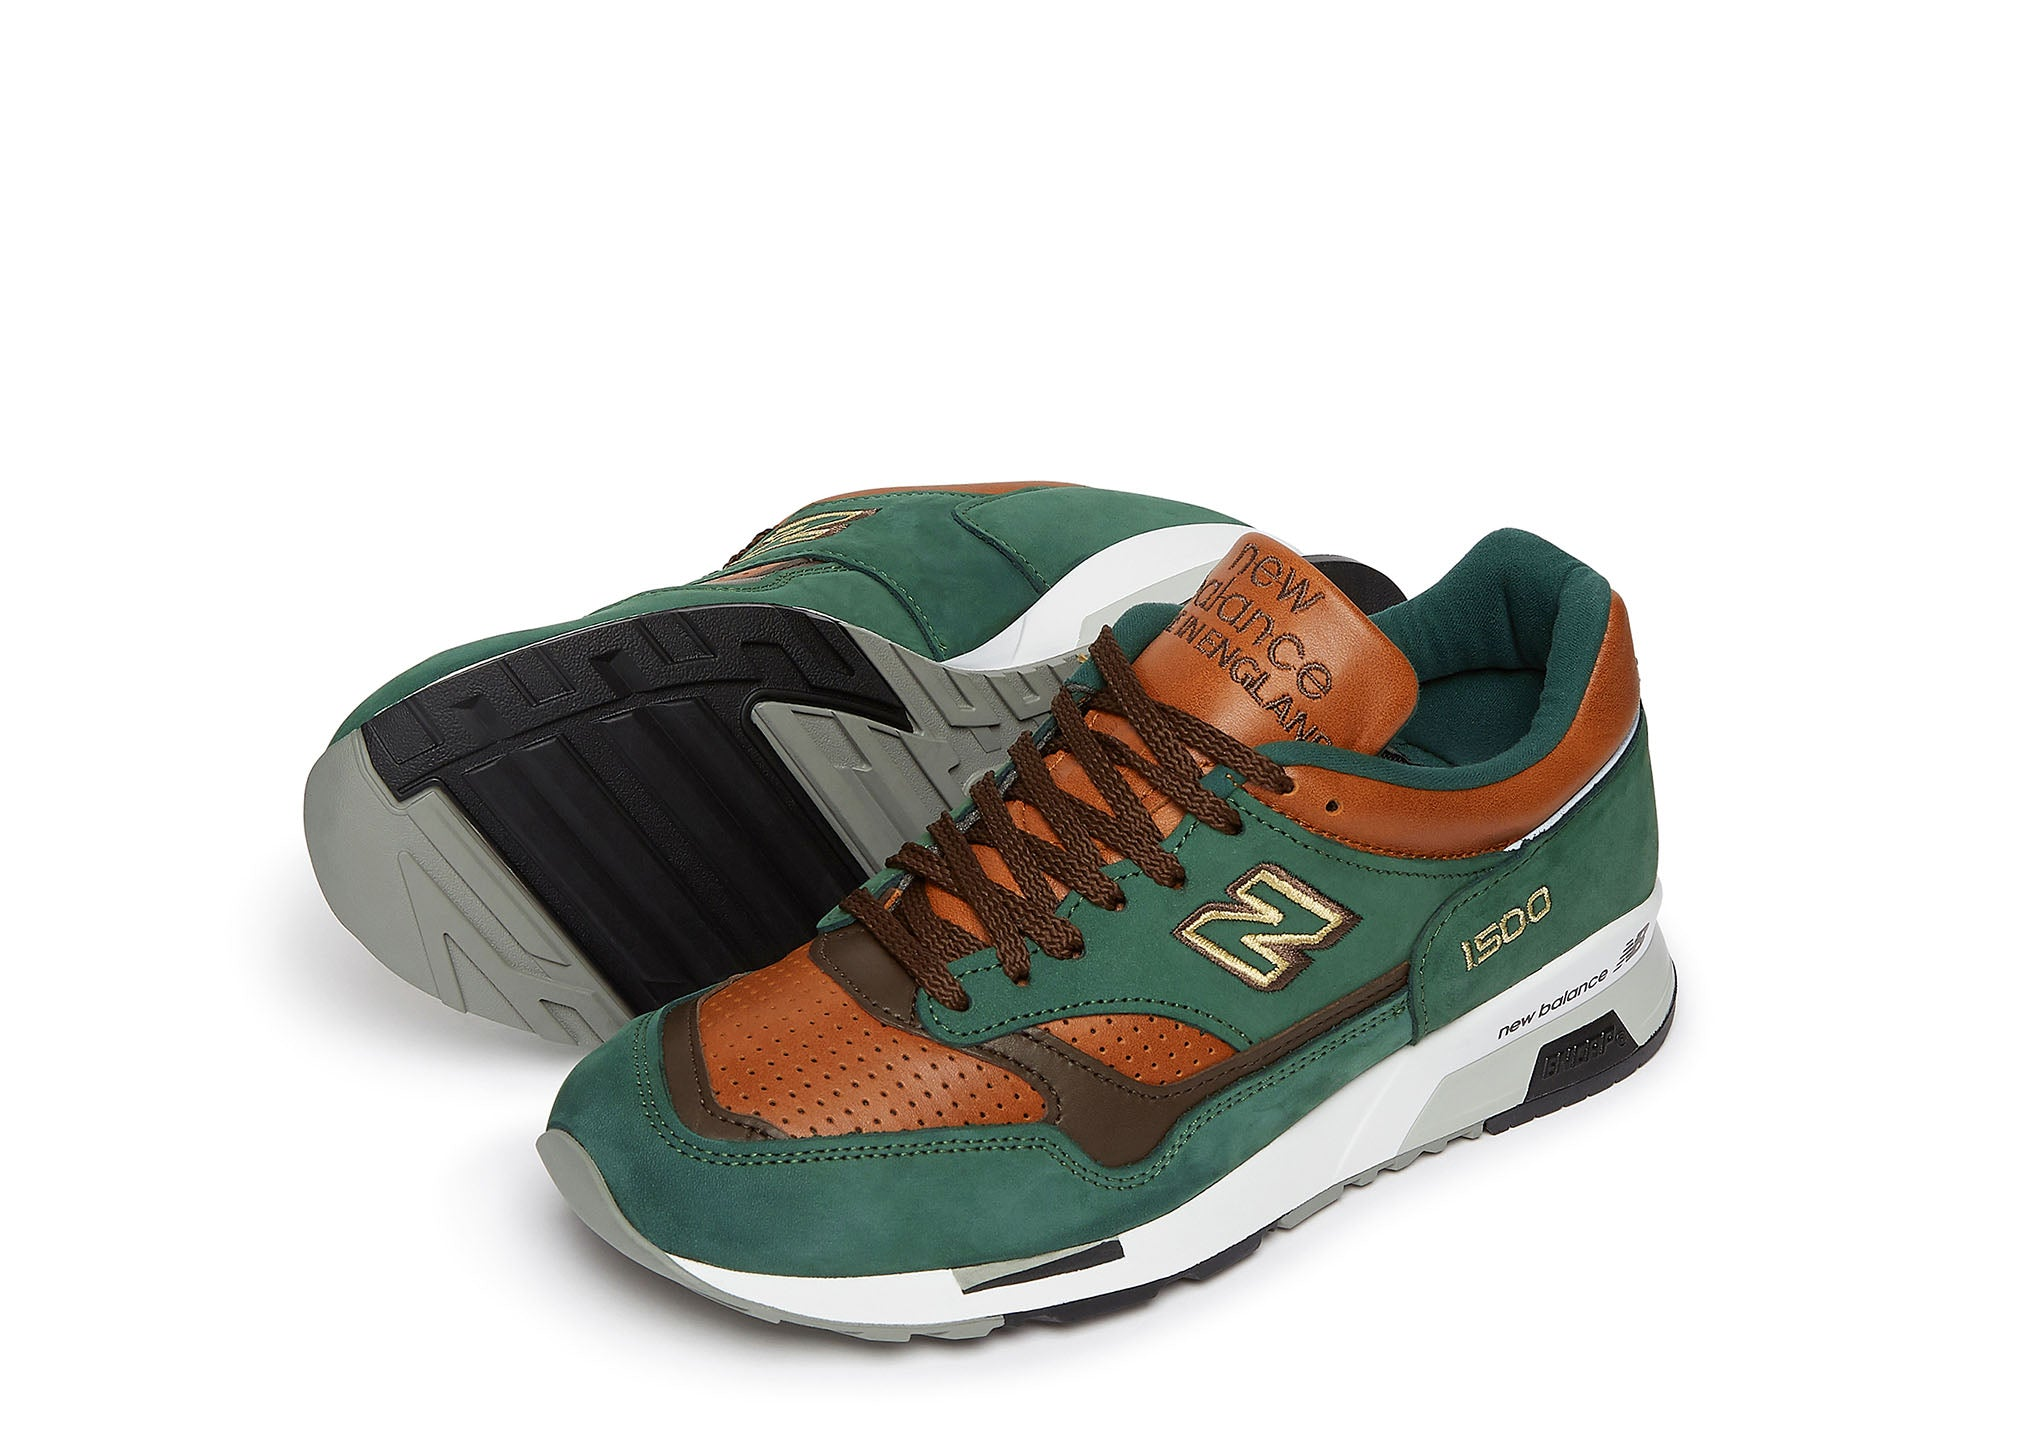 meilleure sélection d5348 546f0 New Balance M1500 in Green/Tan | albam Clothing